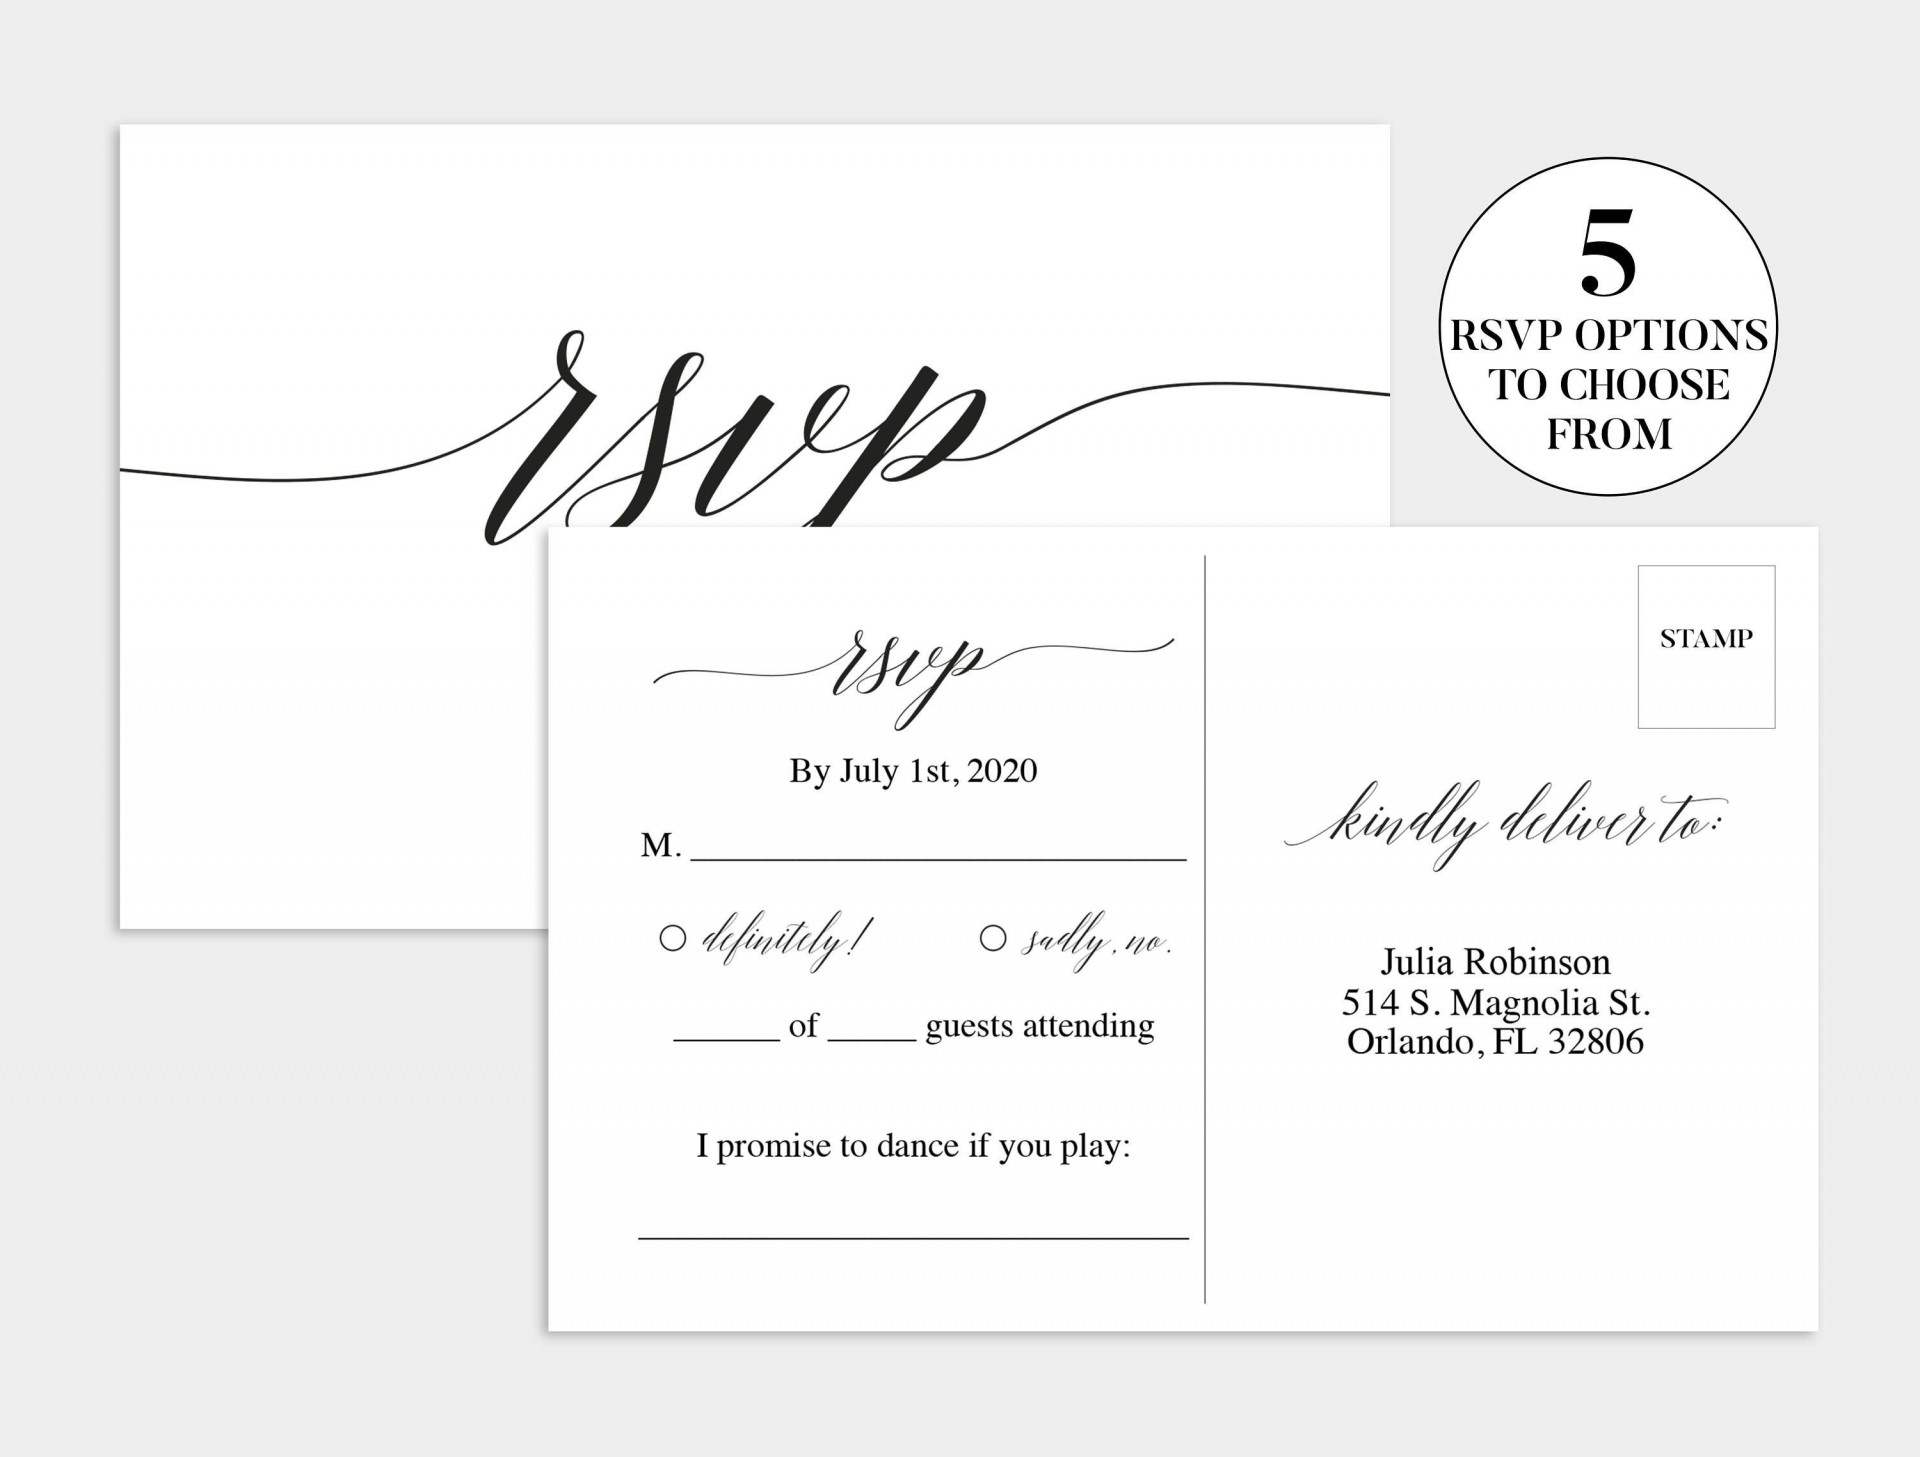 003 Shocking Wedding Rsvp Card Template Highest Clarity  Templates Invitation Menu Free Printable1920